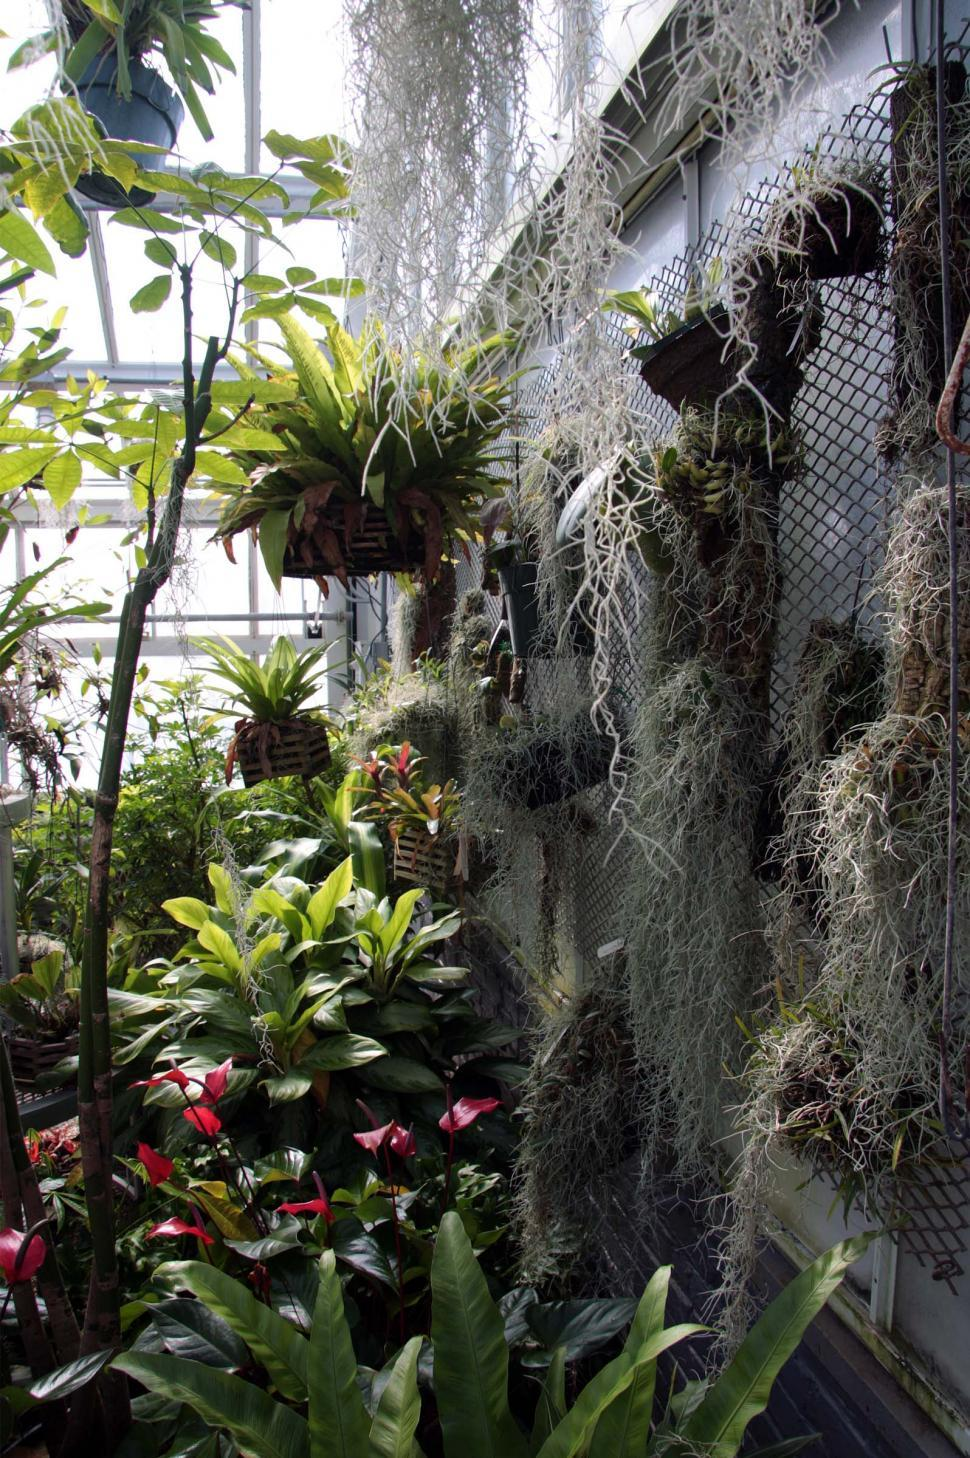 Download Free Stock HD Photo of Greenhouse for Orchids Online